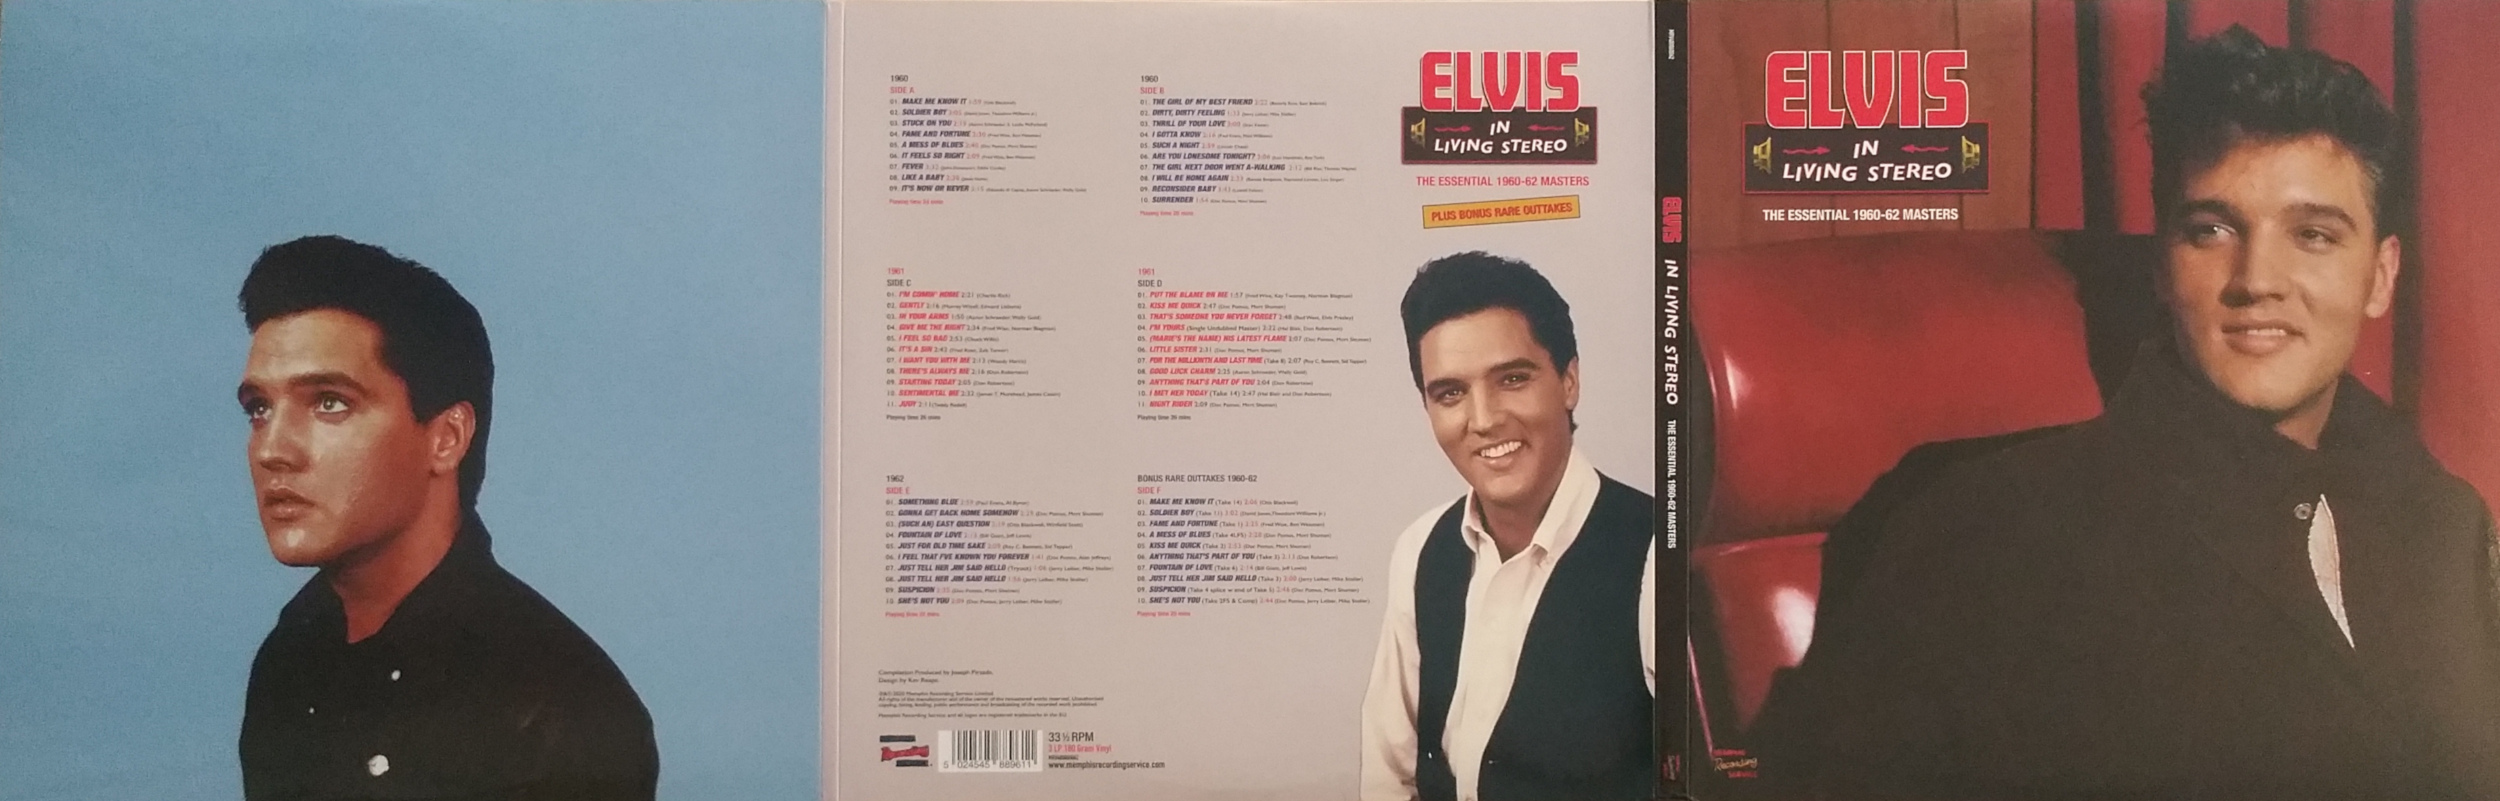 ELVIS IN LIVING STEREO (The Essentail 1960 - 1962 Masters) Elvisinlivingstereo2qfjnc